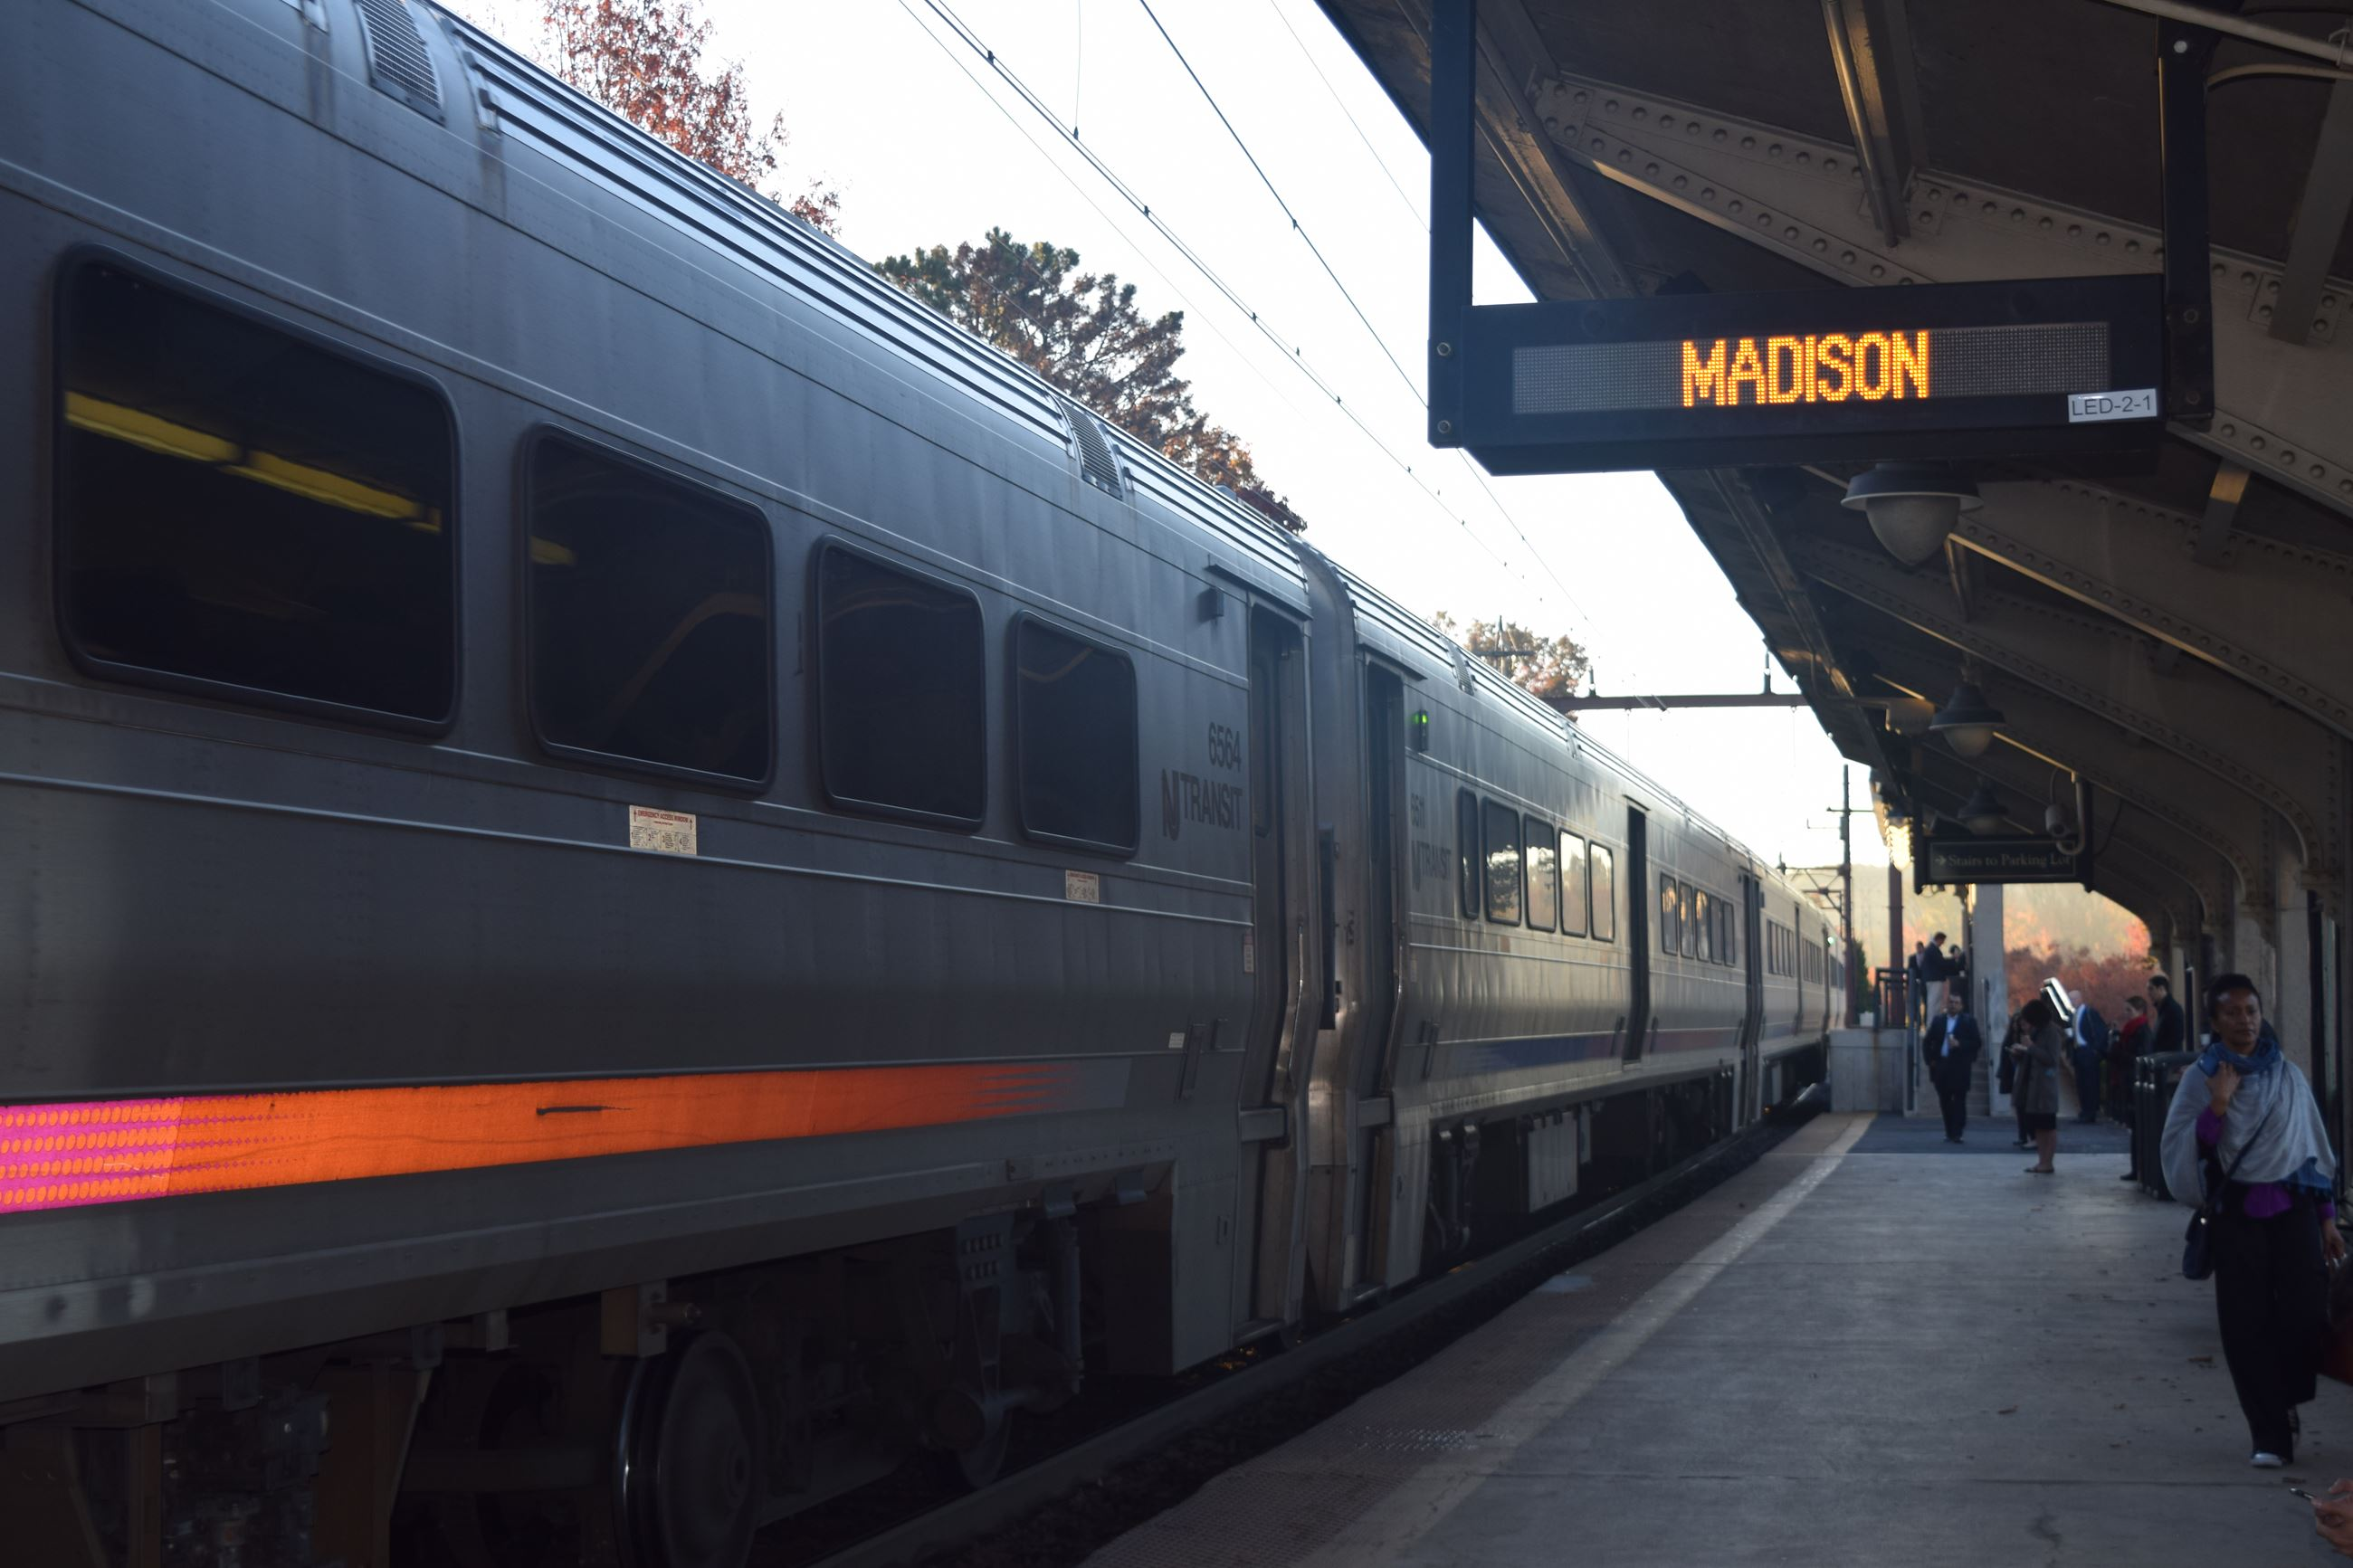 NJ Transit Service Changes for Amtrak Summer Repairs